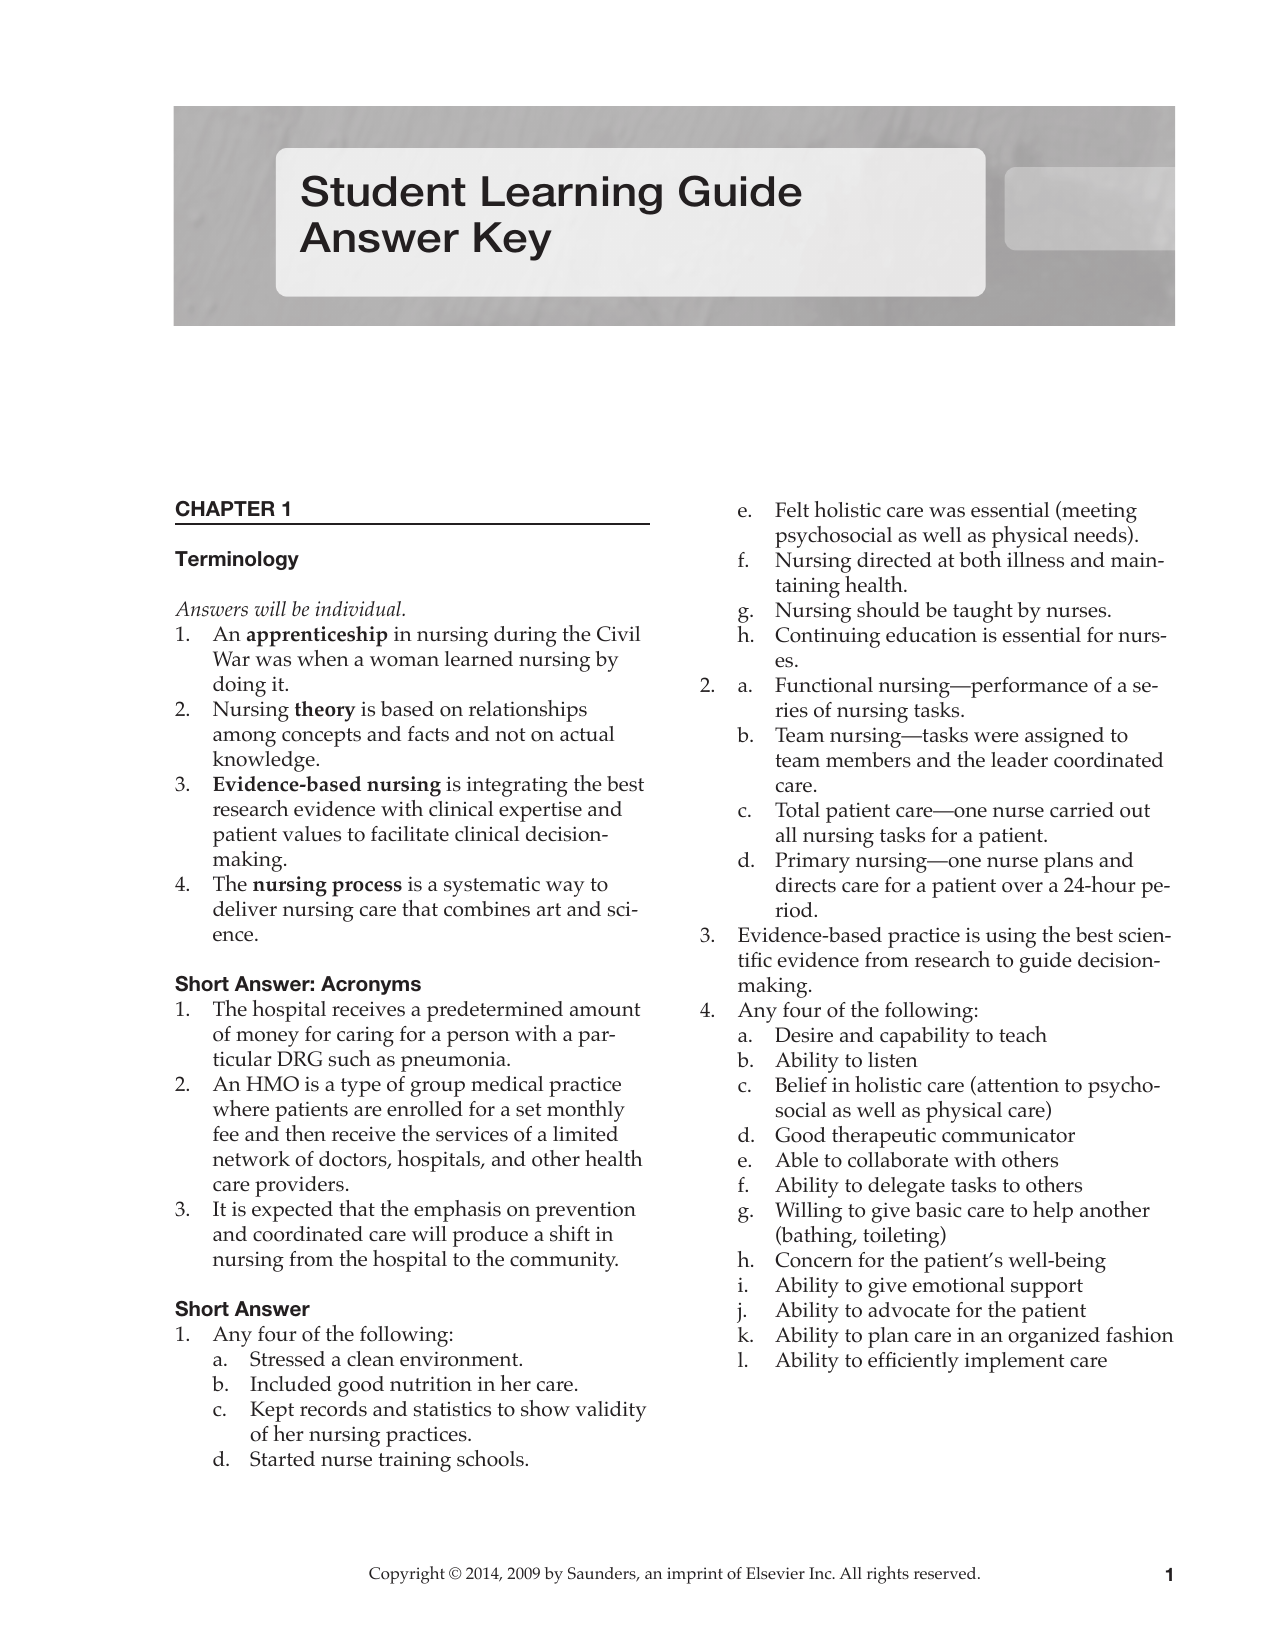 Student Learning Guide Answer Key